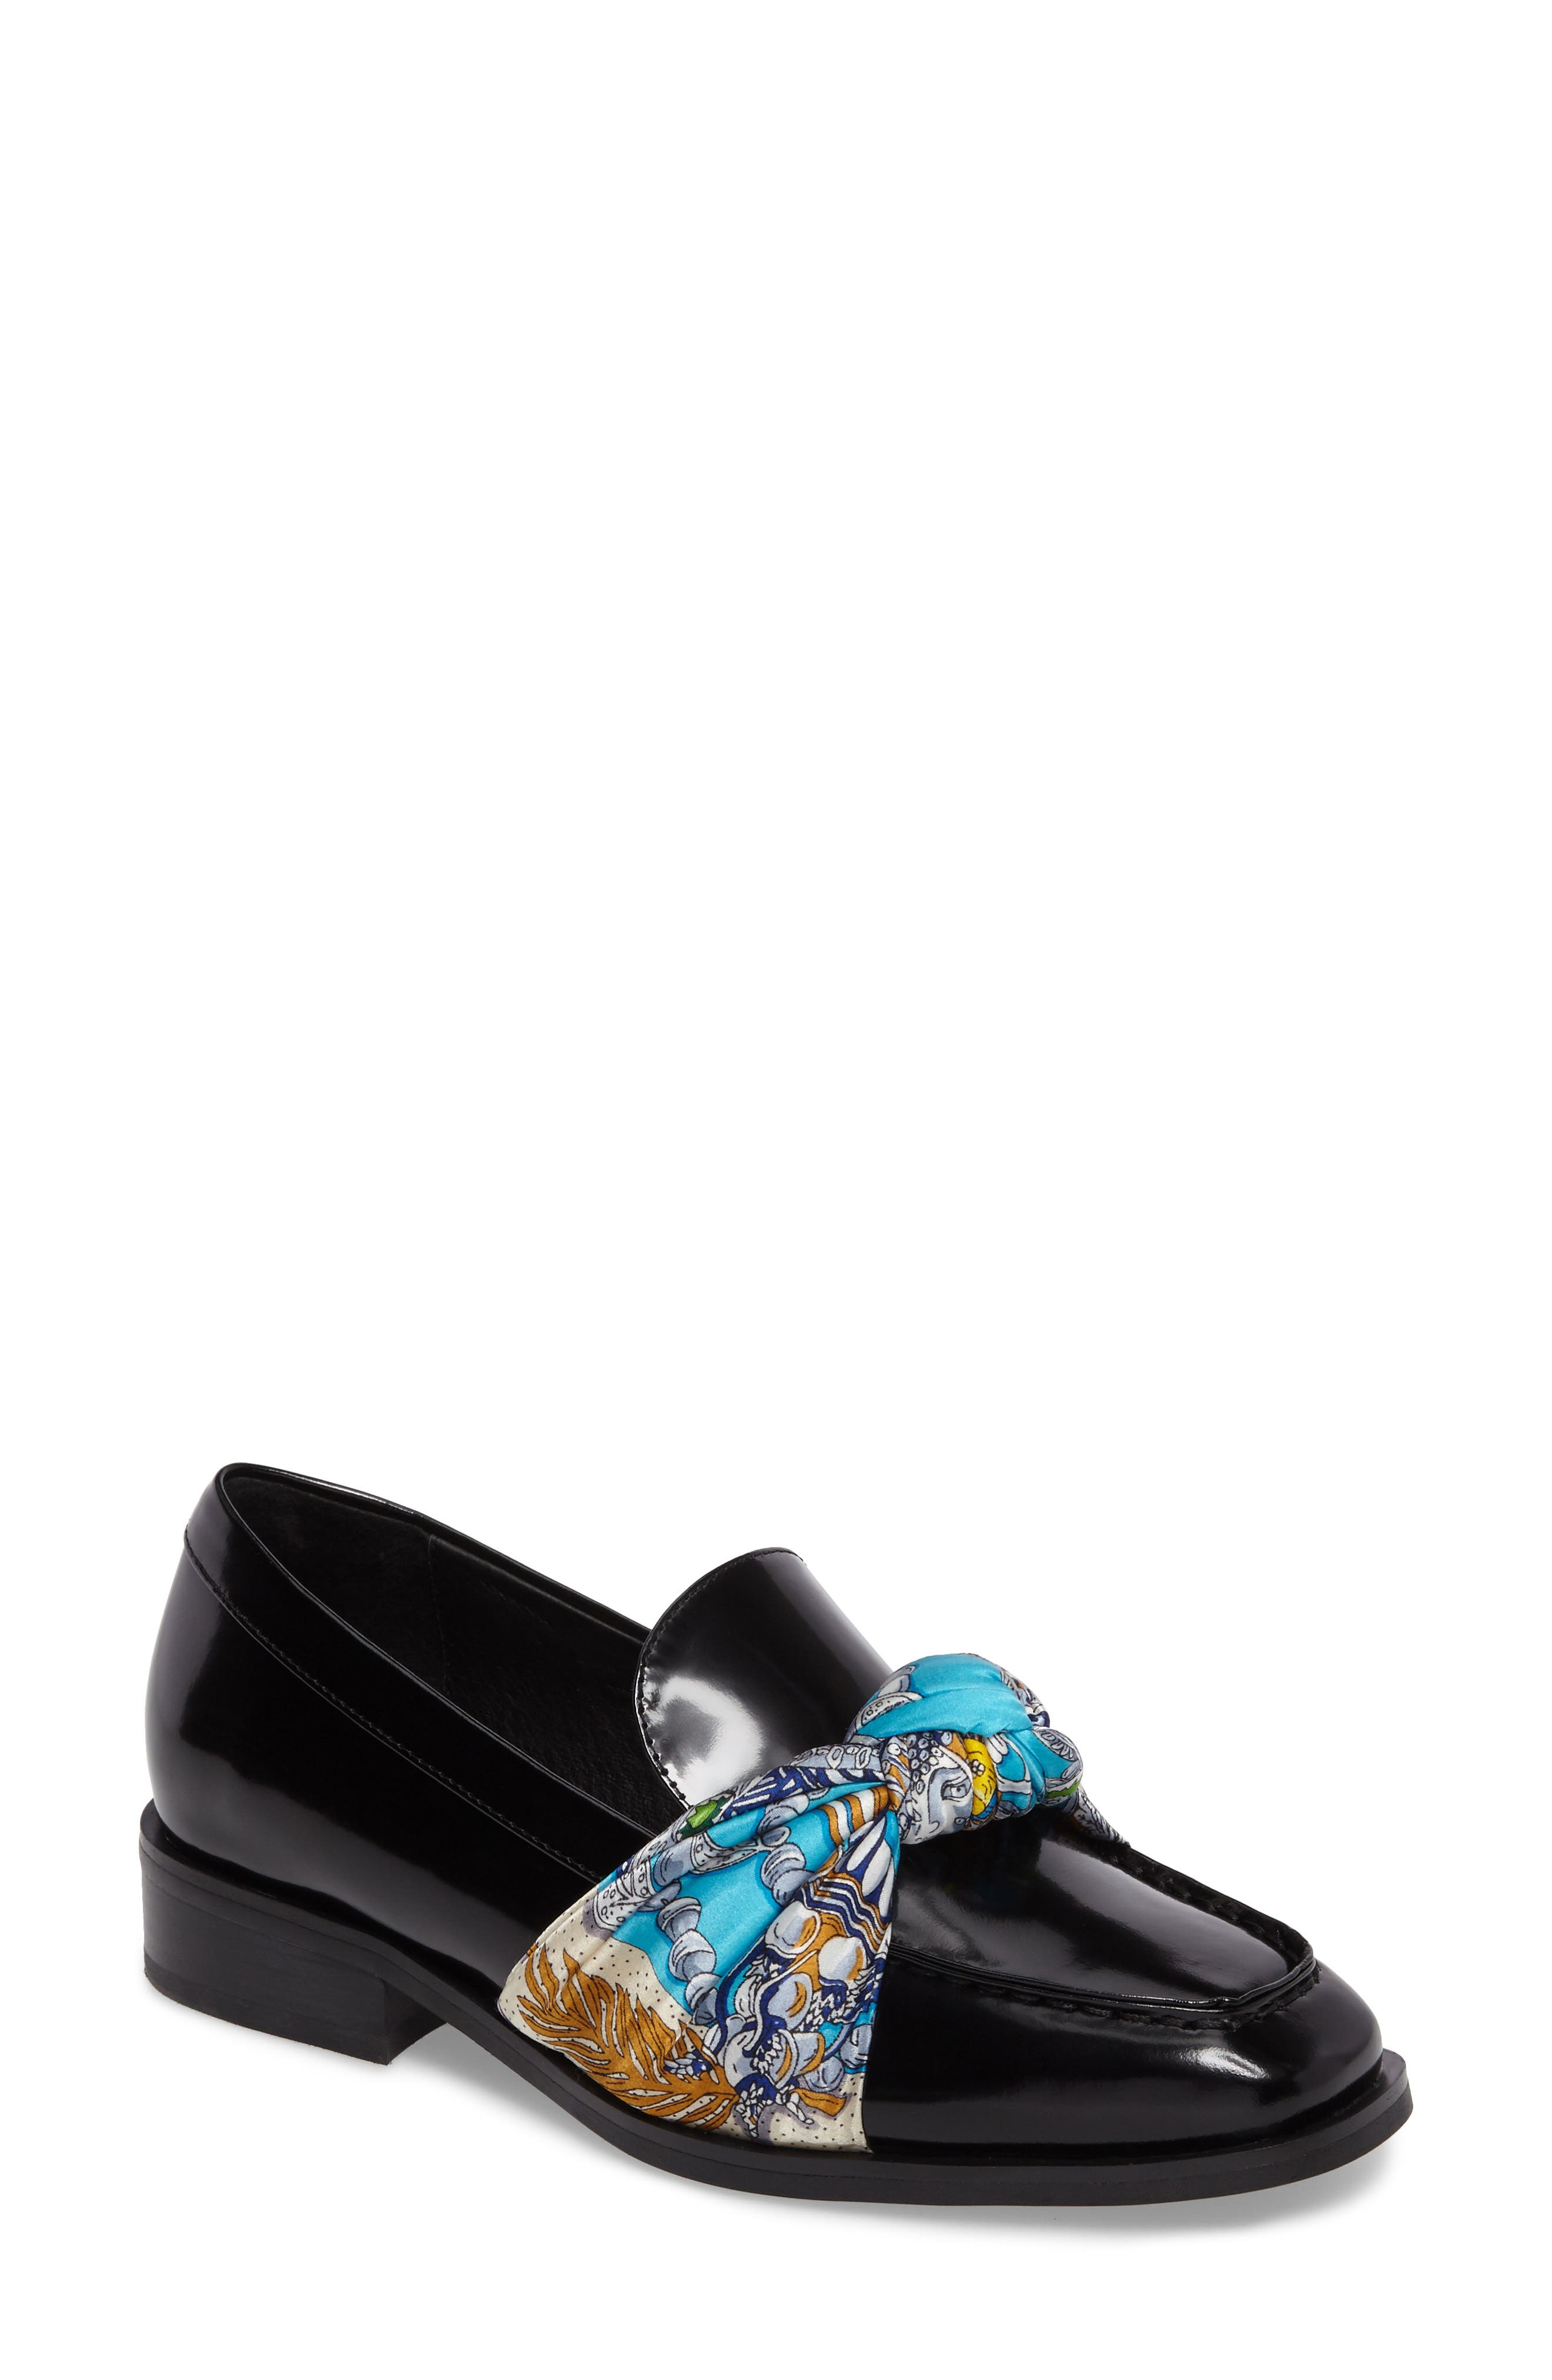 Alternate Image 1 Selected - Jeffrey Campbell Bollero Loafer (Women)